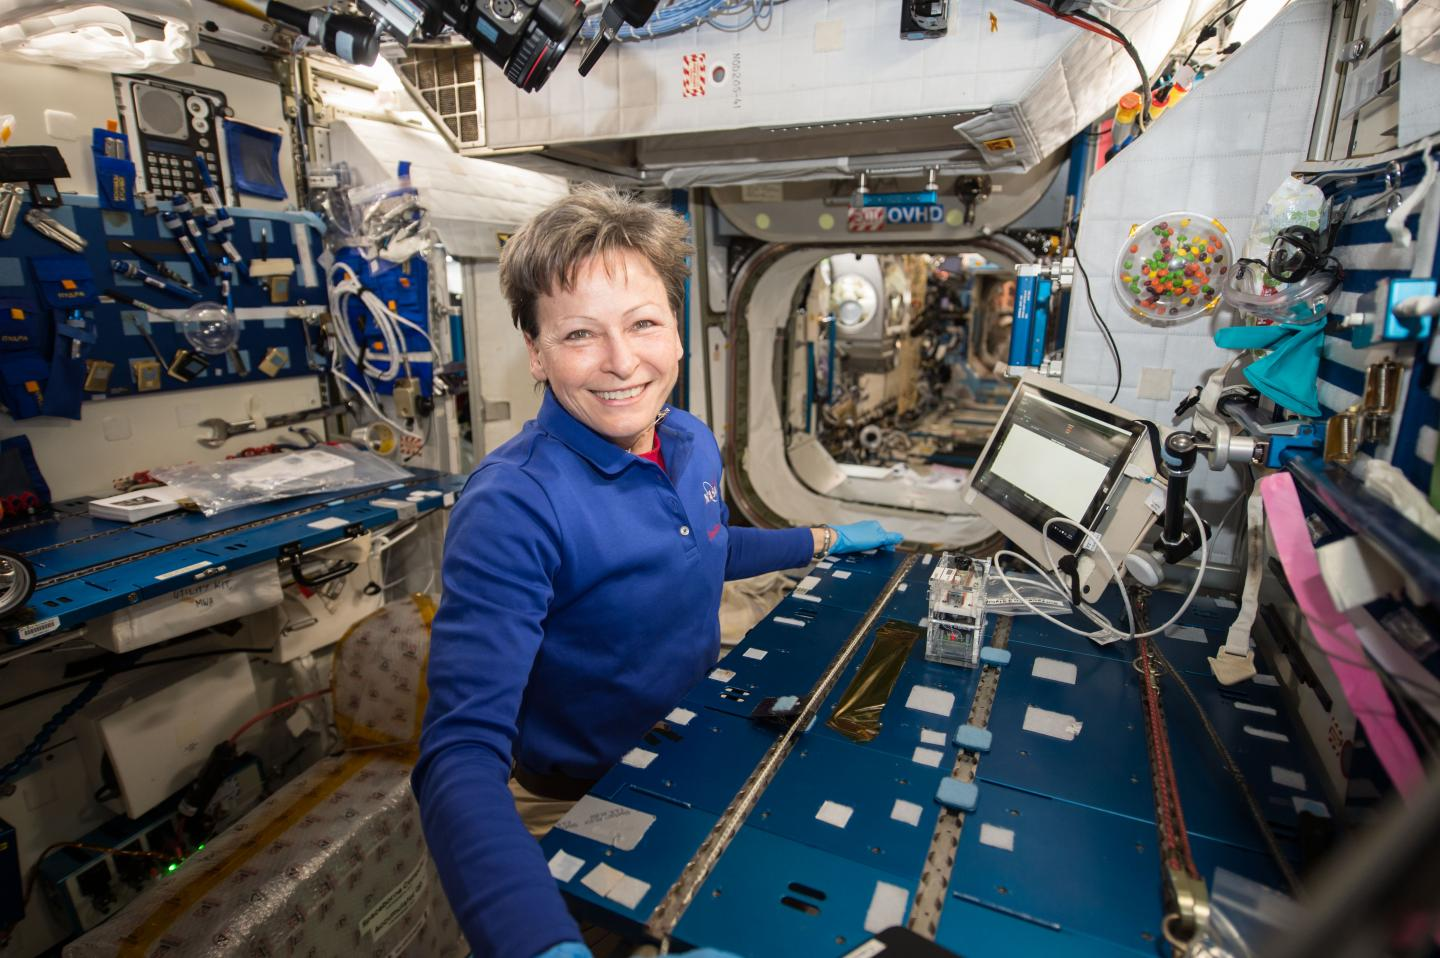 NASA astronaut Peggy Whitson worked within the Microgravity Science Glovebox on the space station to transfer cells from bacterial colonies grown on petri dishes into miniature test tubes. It was the first time the process had been performed in space. Credit: NASA